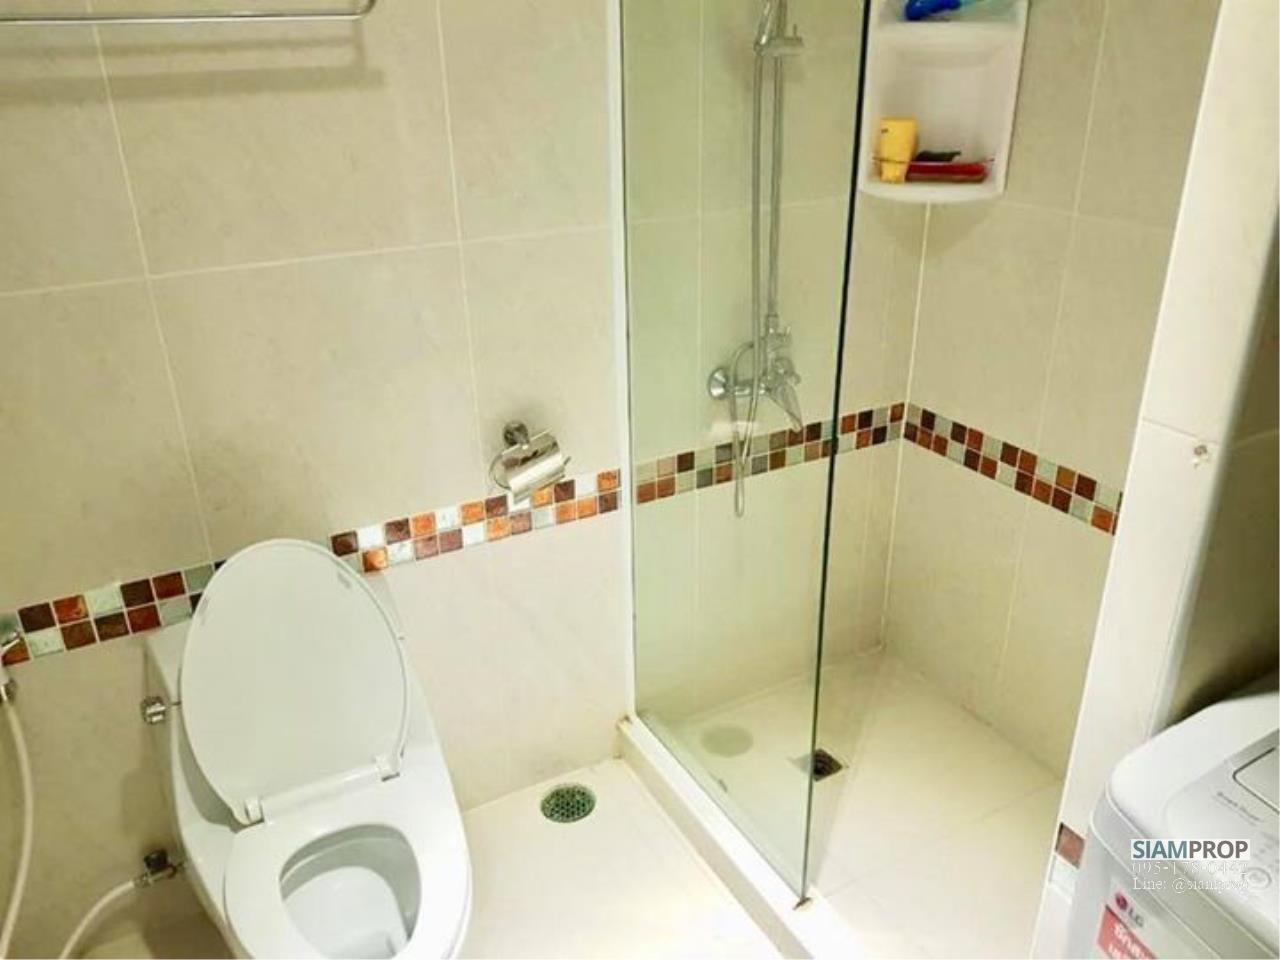 Siam Prop Agency's Wittayu Complex - Pet friendly condo for rent 4